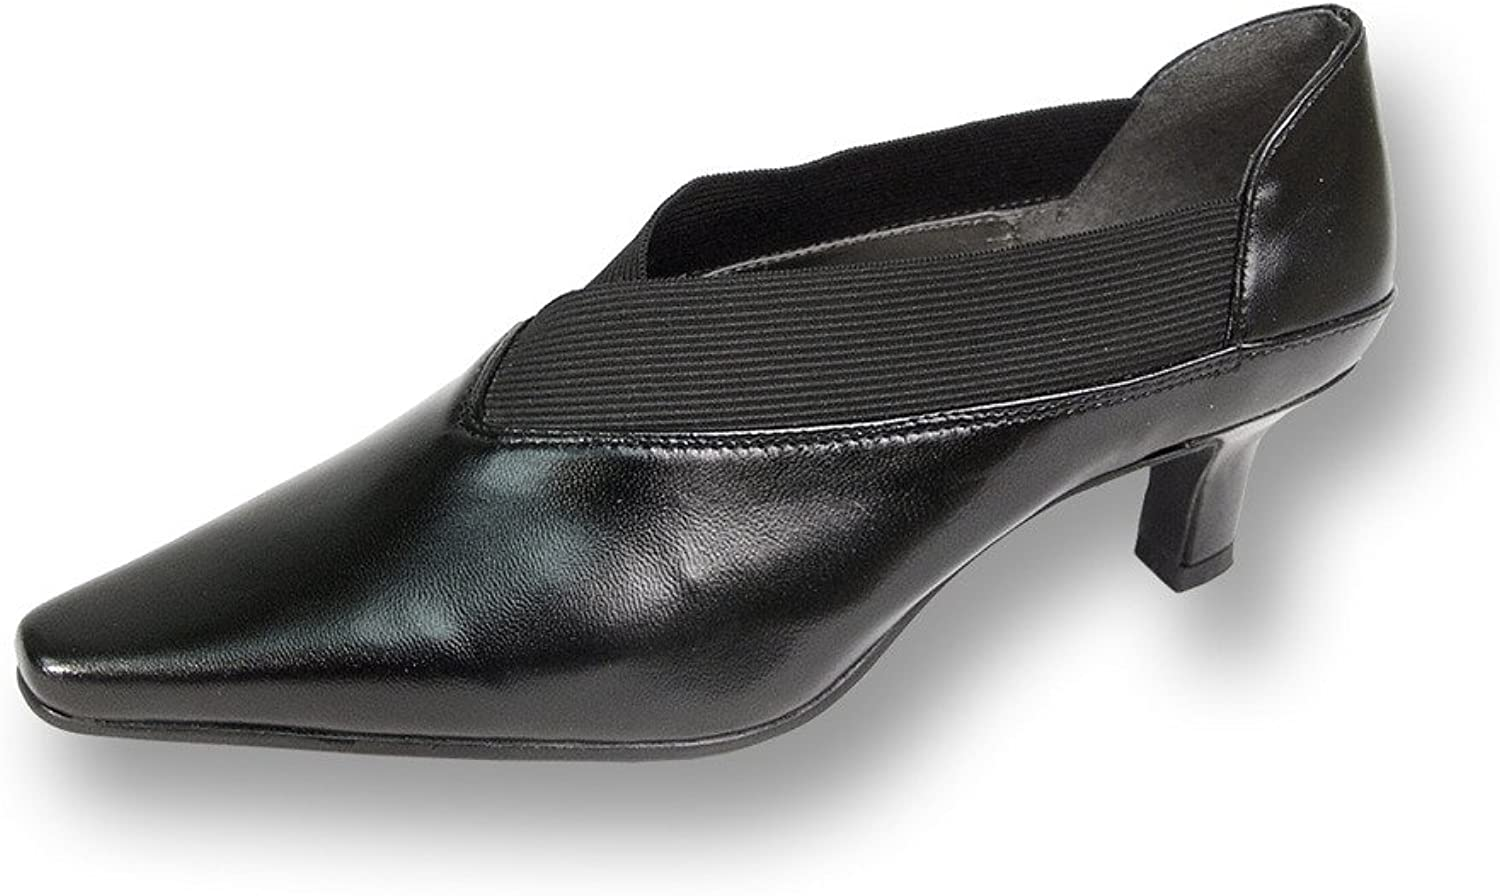 Peerage FIC Rita Women Wide Width Leather Dress Pump (Size & Measurement Guides Available)